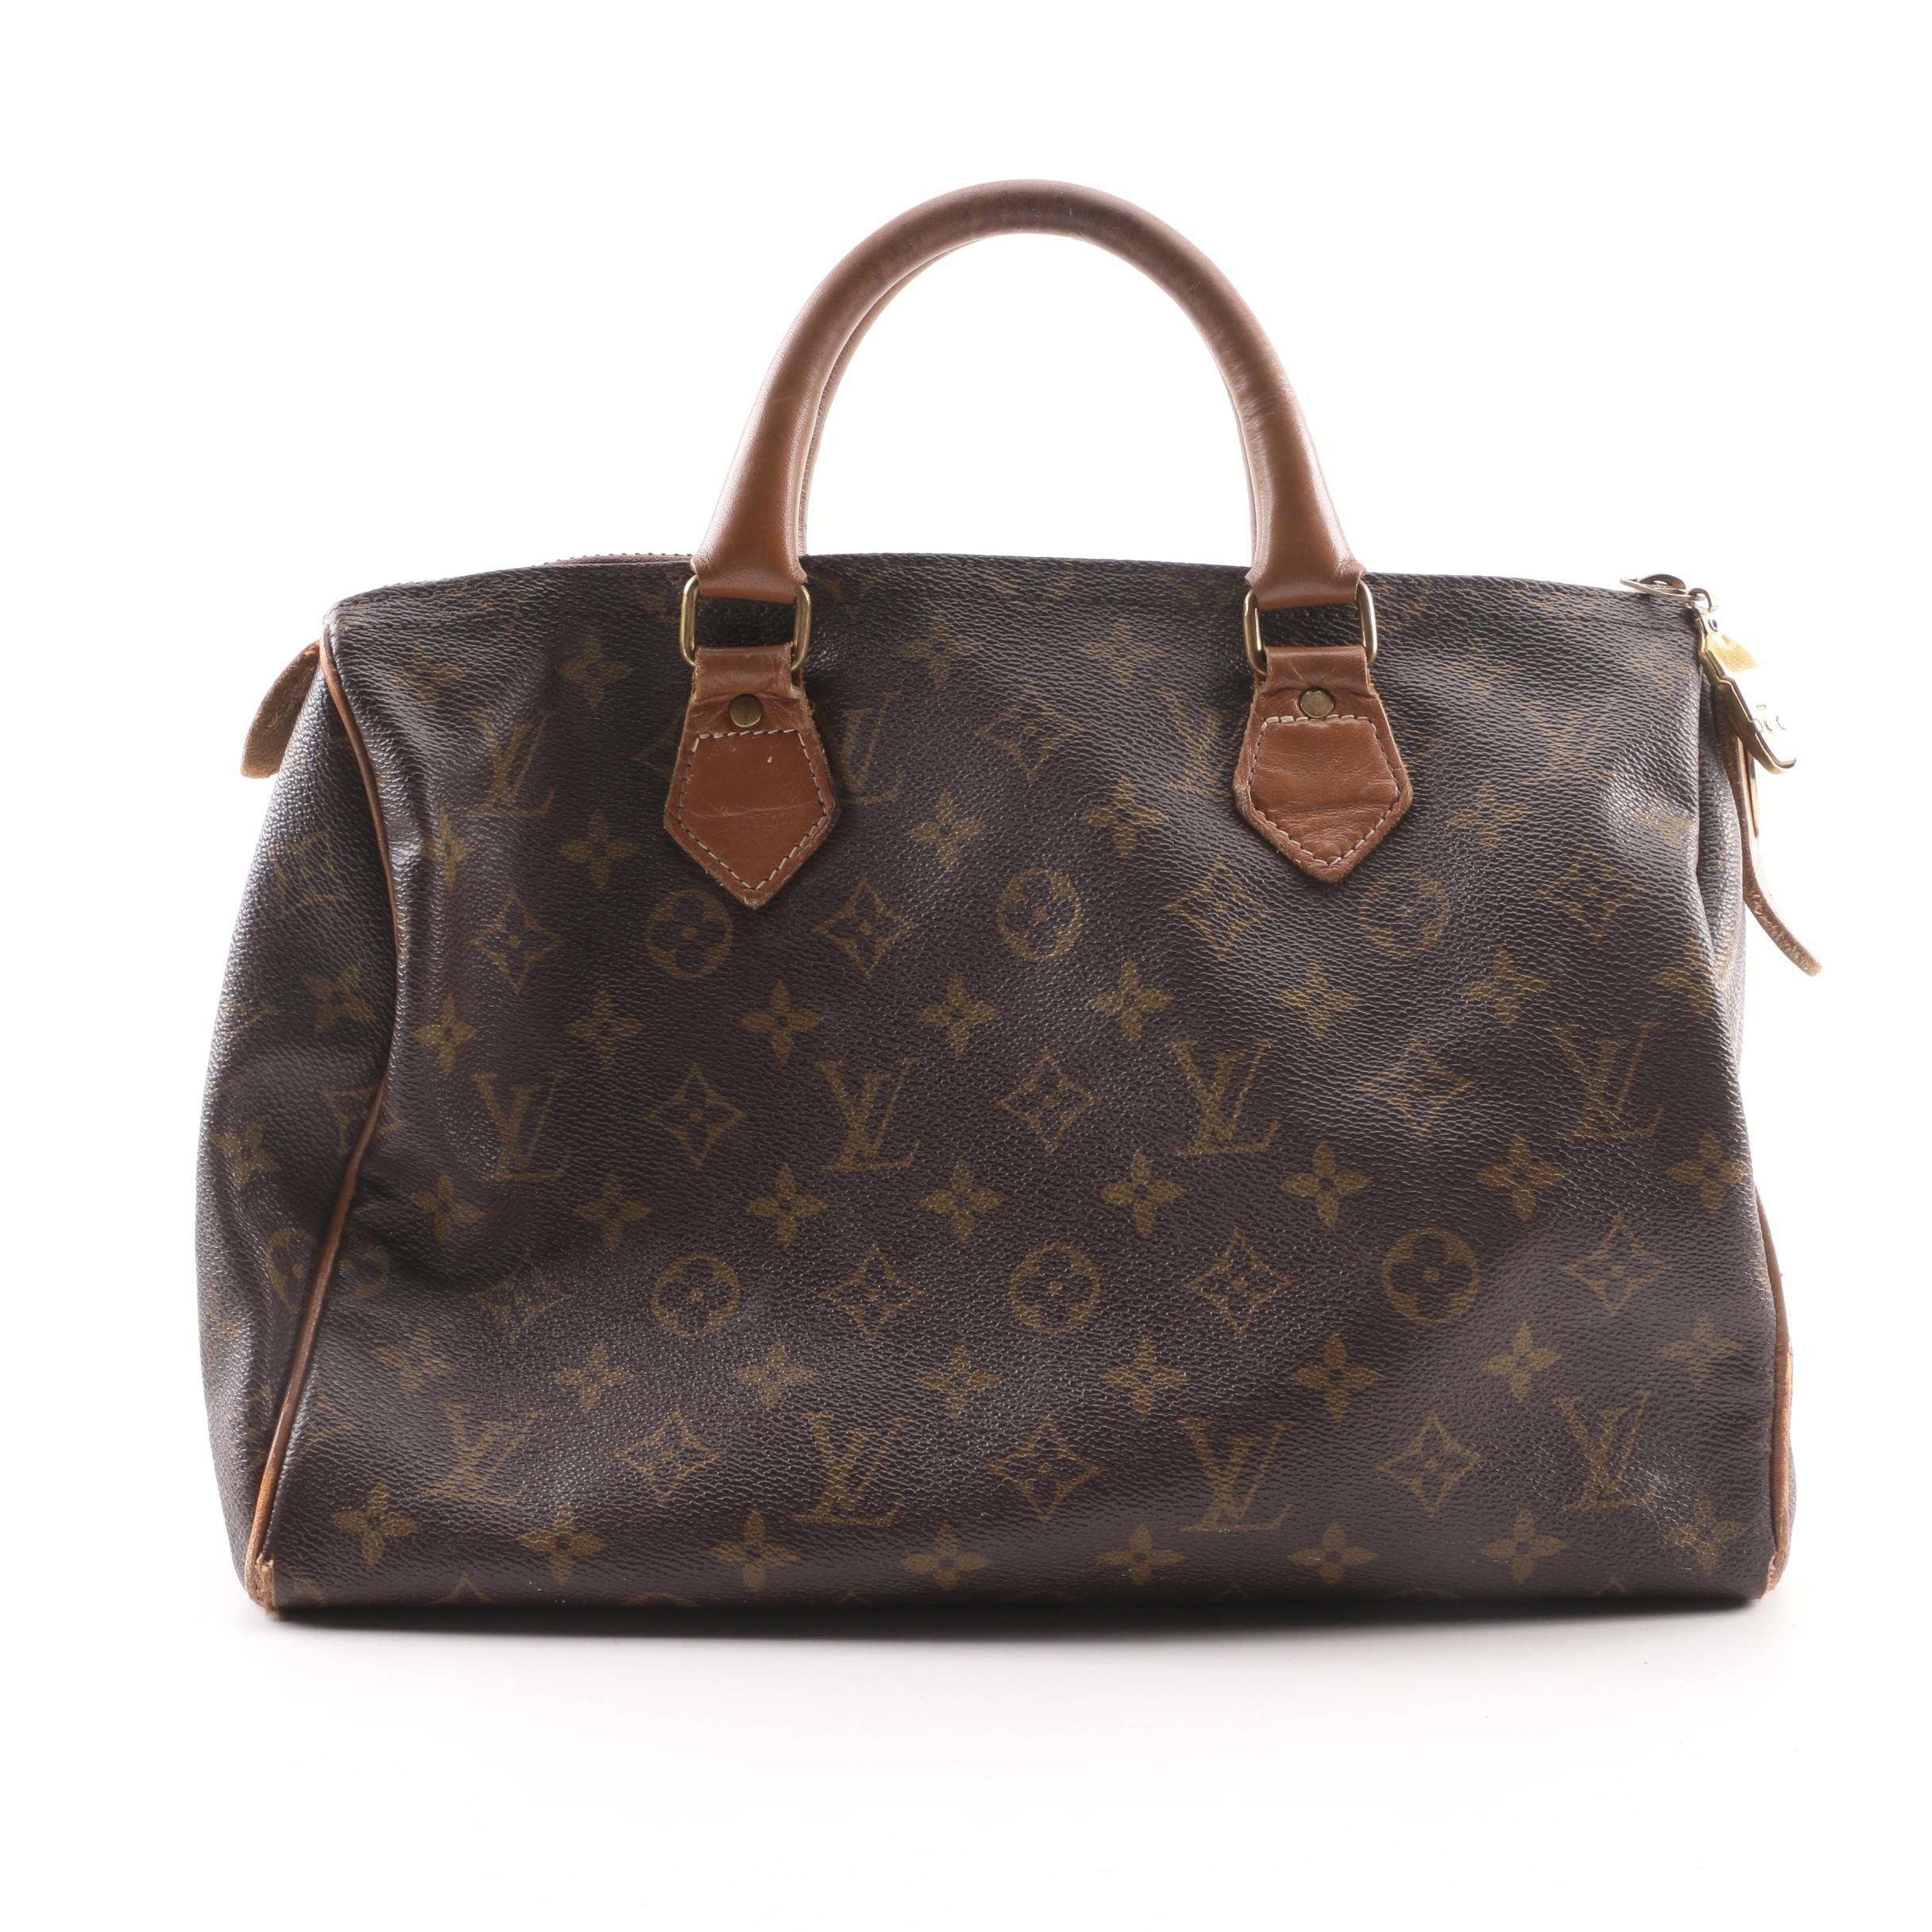 Vintage The French Company for Louis Vuitton Monogram Speedy Handbag